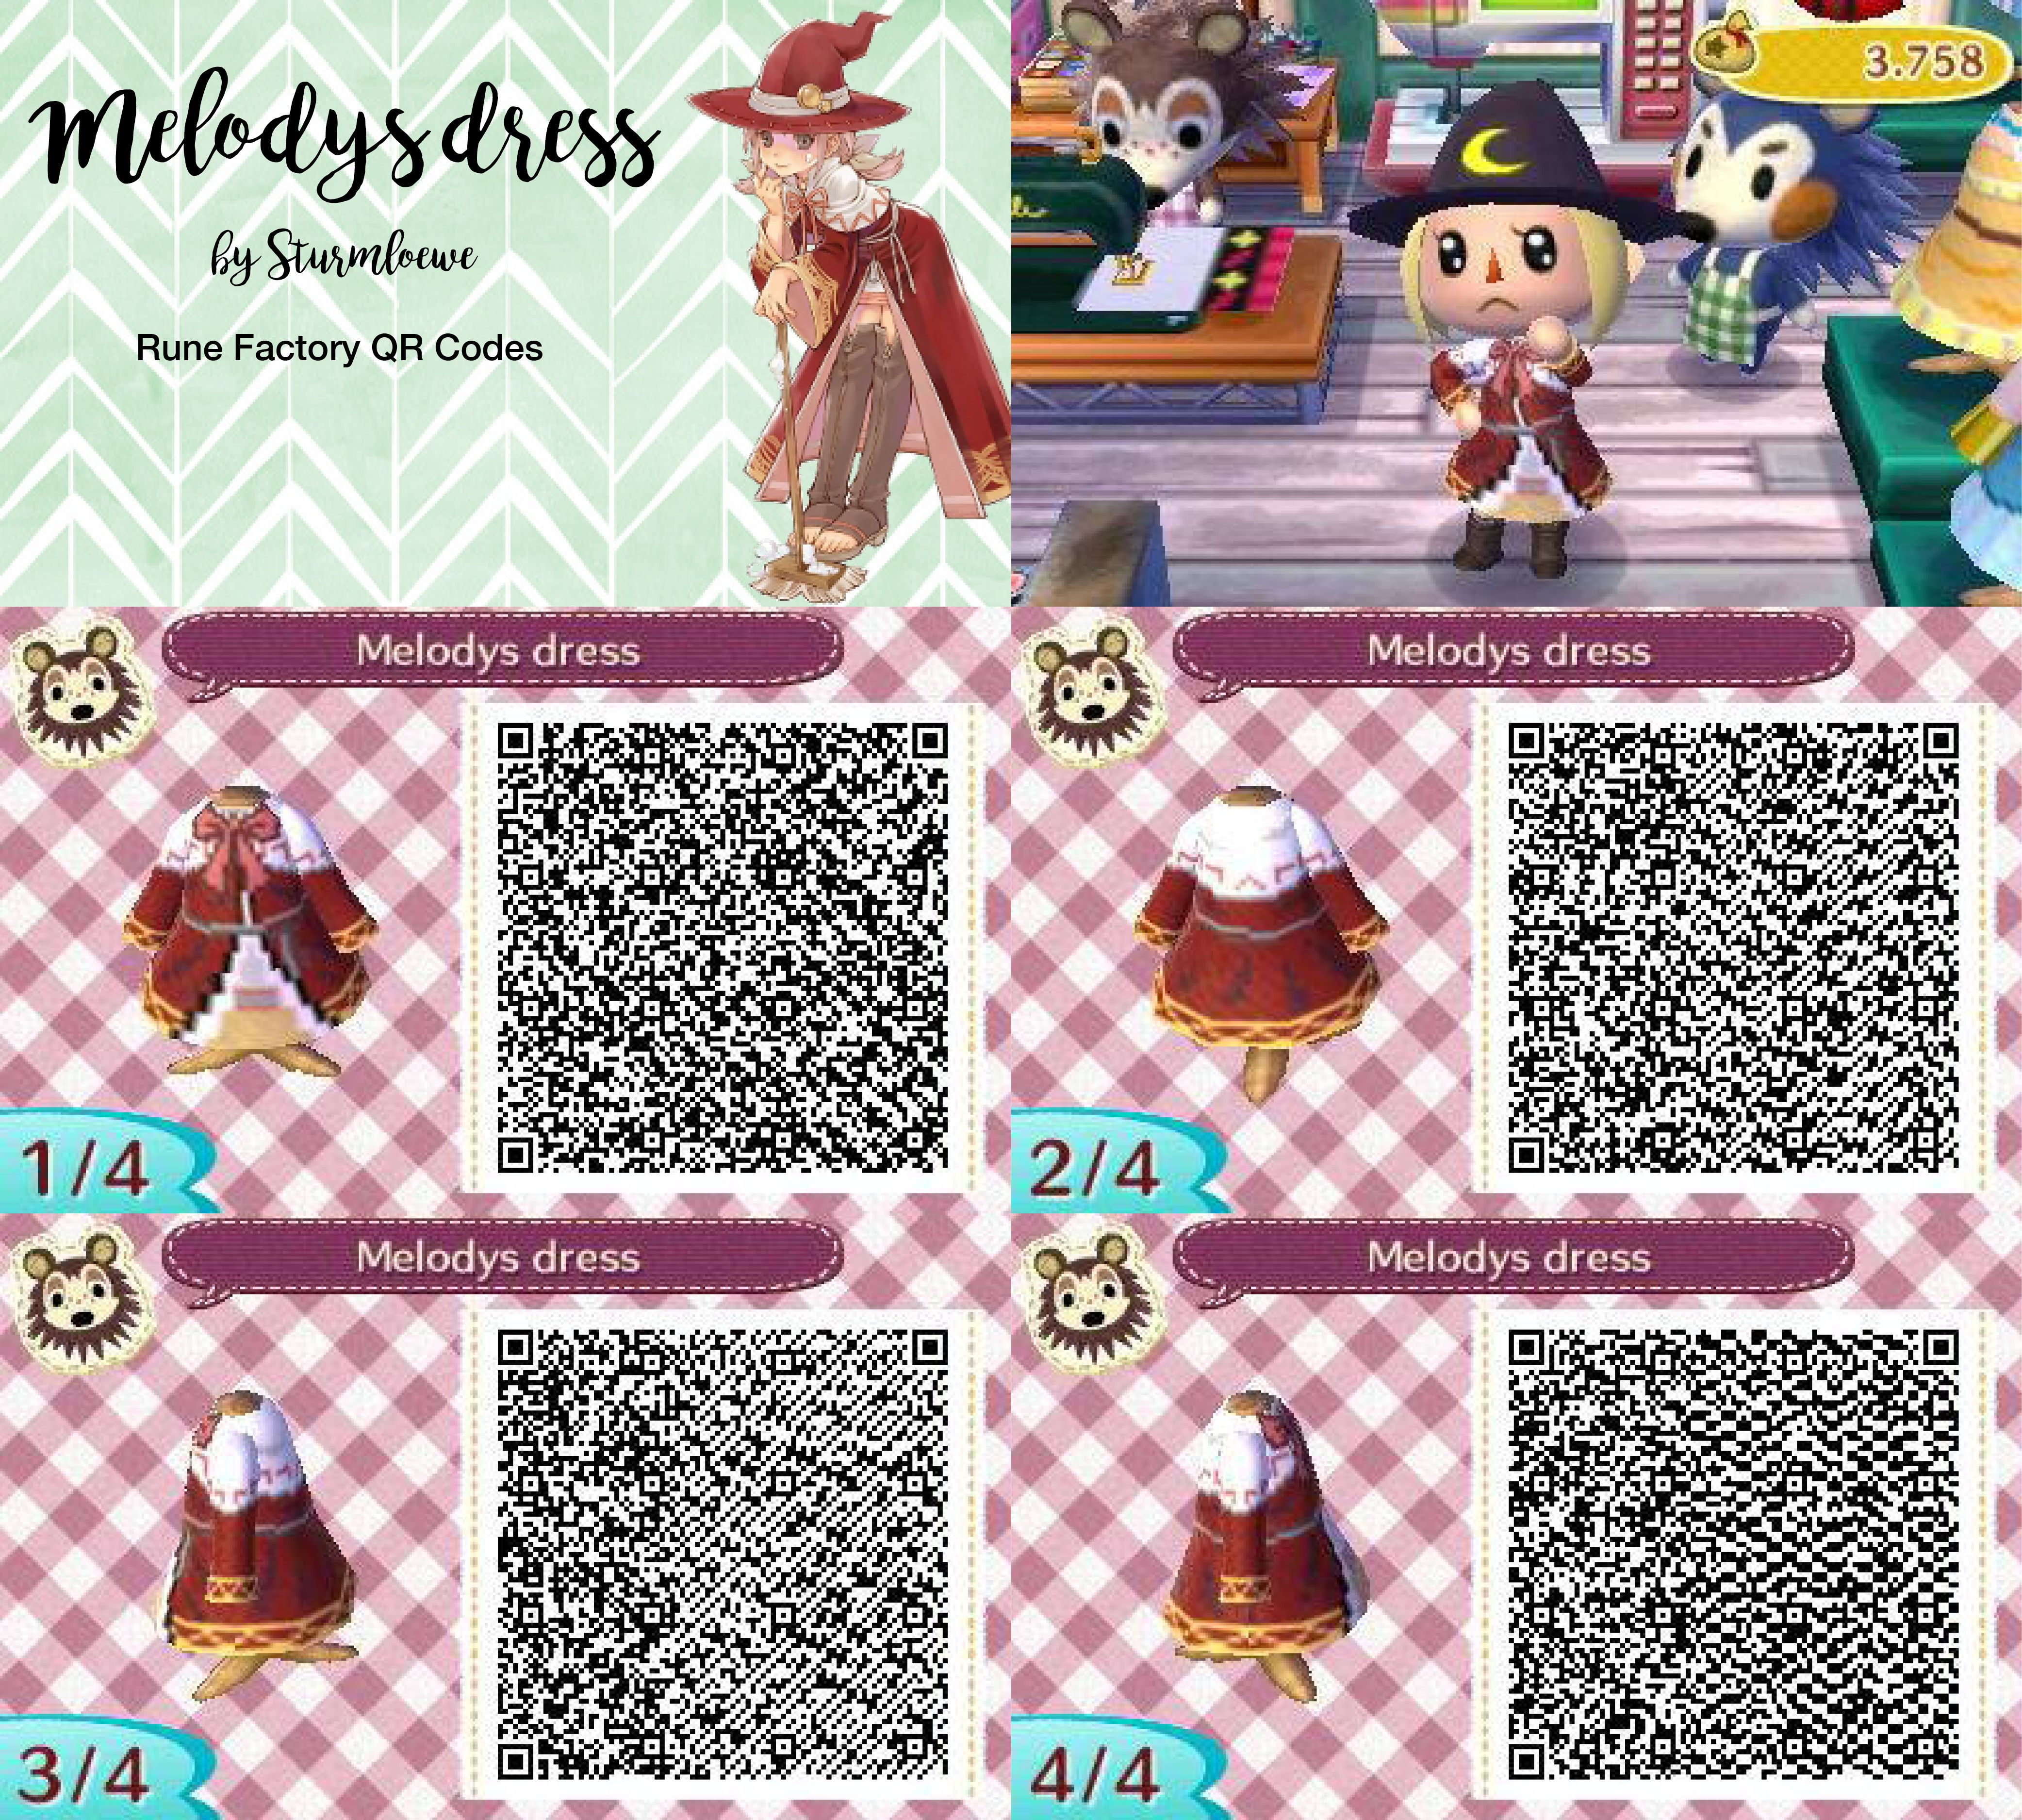 Fall Wallpaper Animal Crossing New Leaf Rune Factory A Fantasy Harvest Moon Melodies Dress For